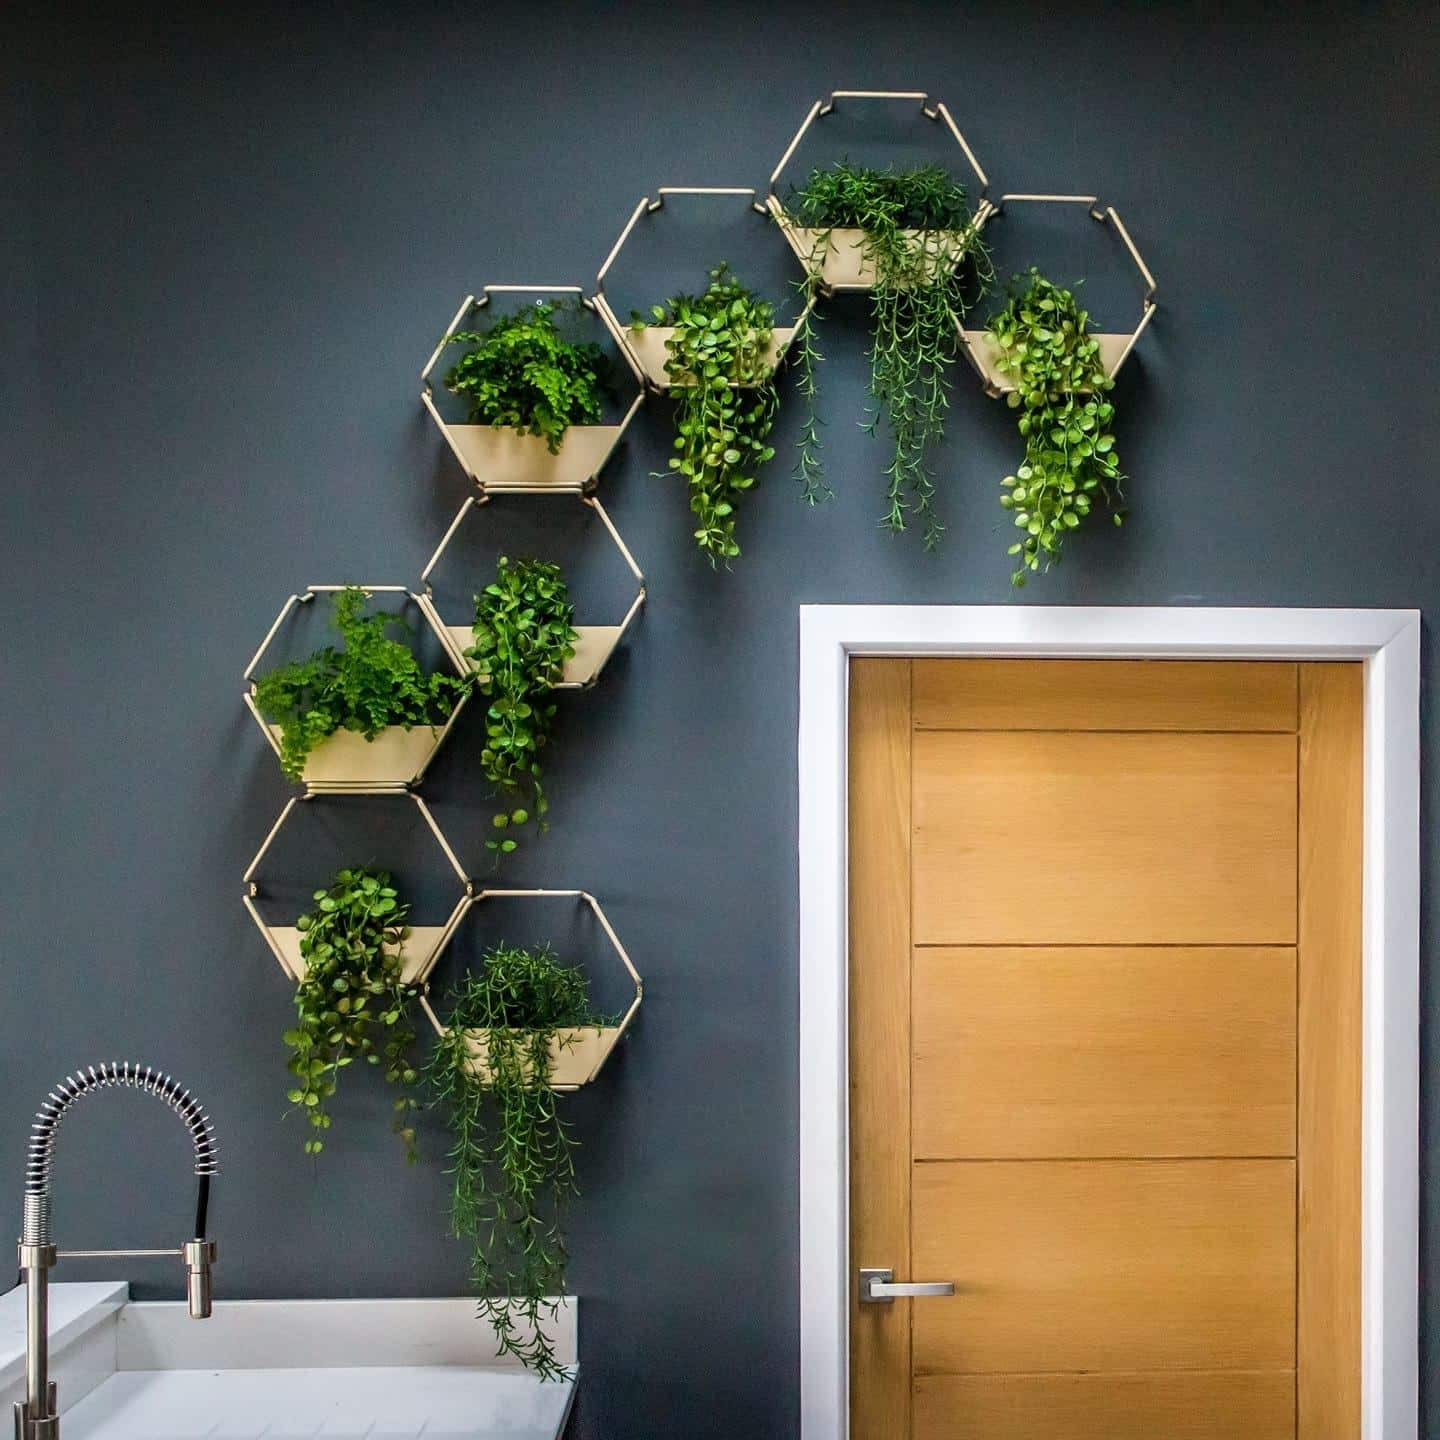 One of Urban B's art pieces which displays several plants in a hexagonal structure trailing across a wall and above a door